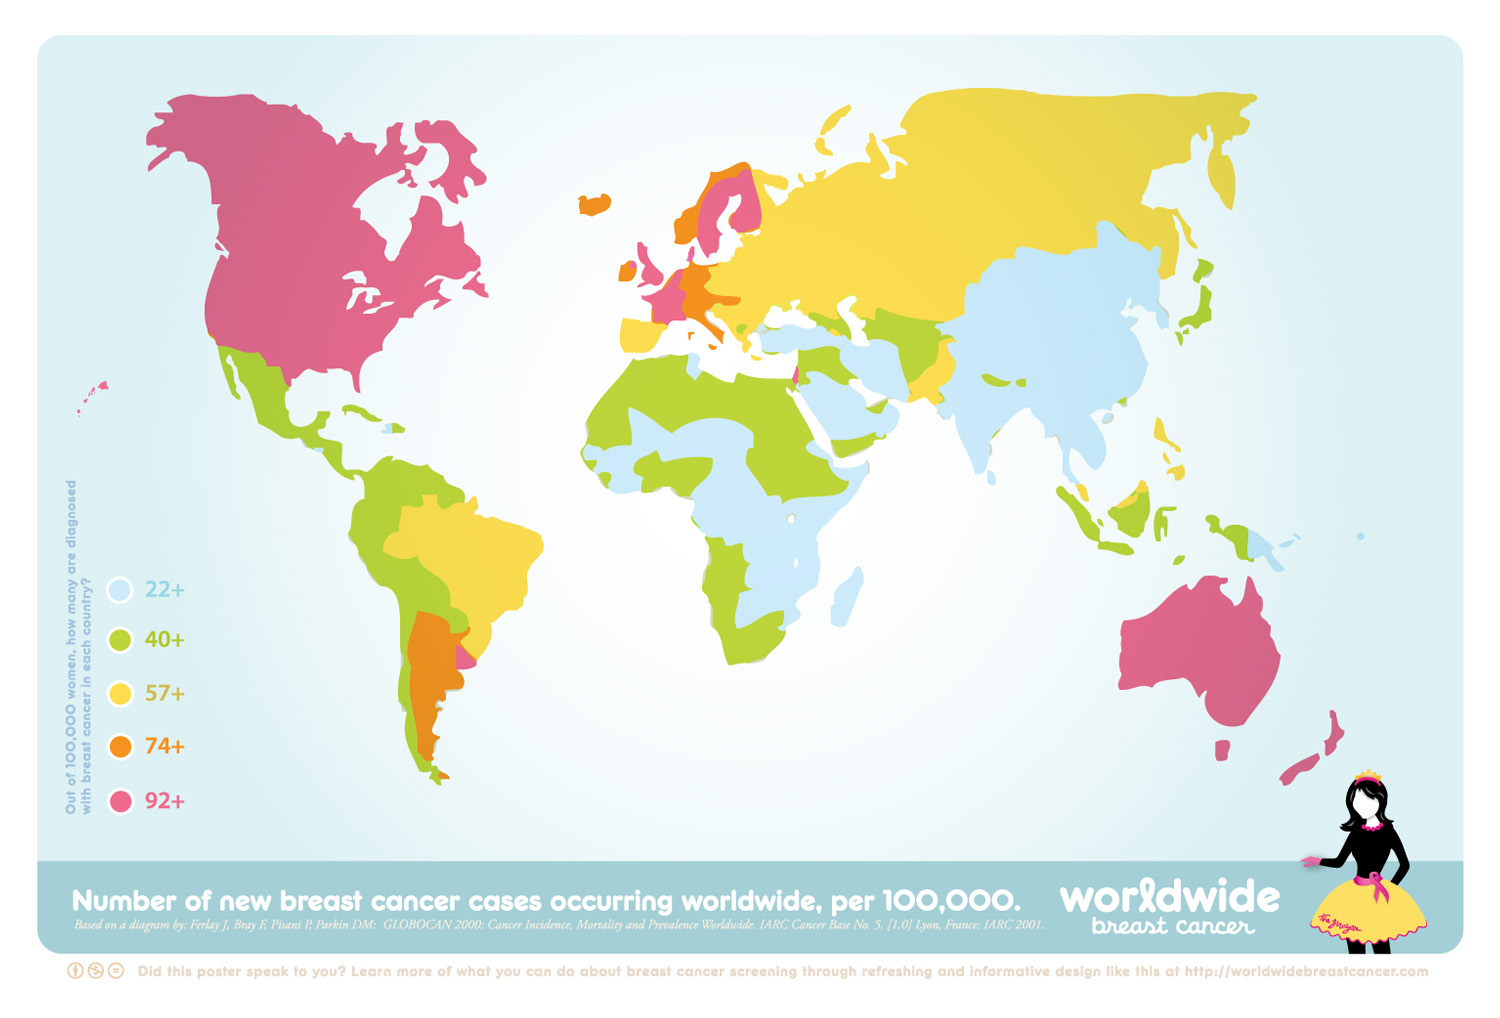 world cancer report 2014 pdf